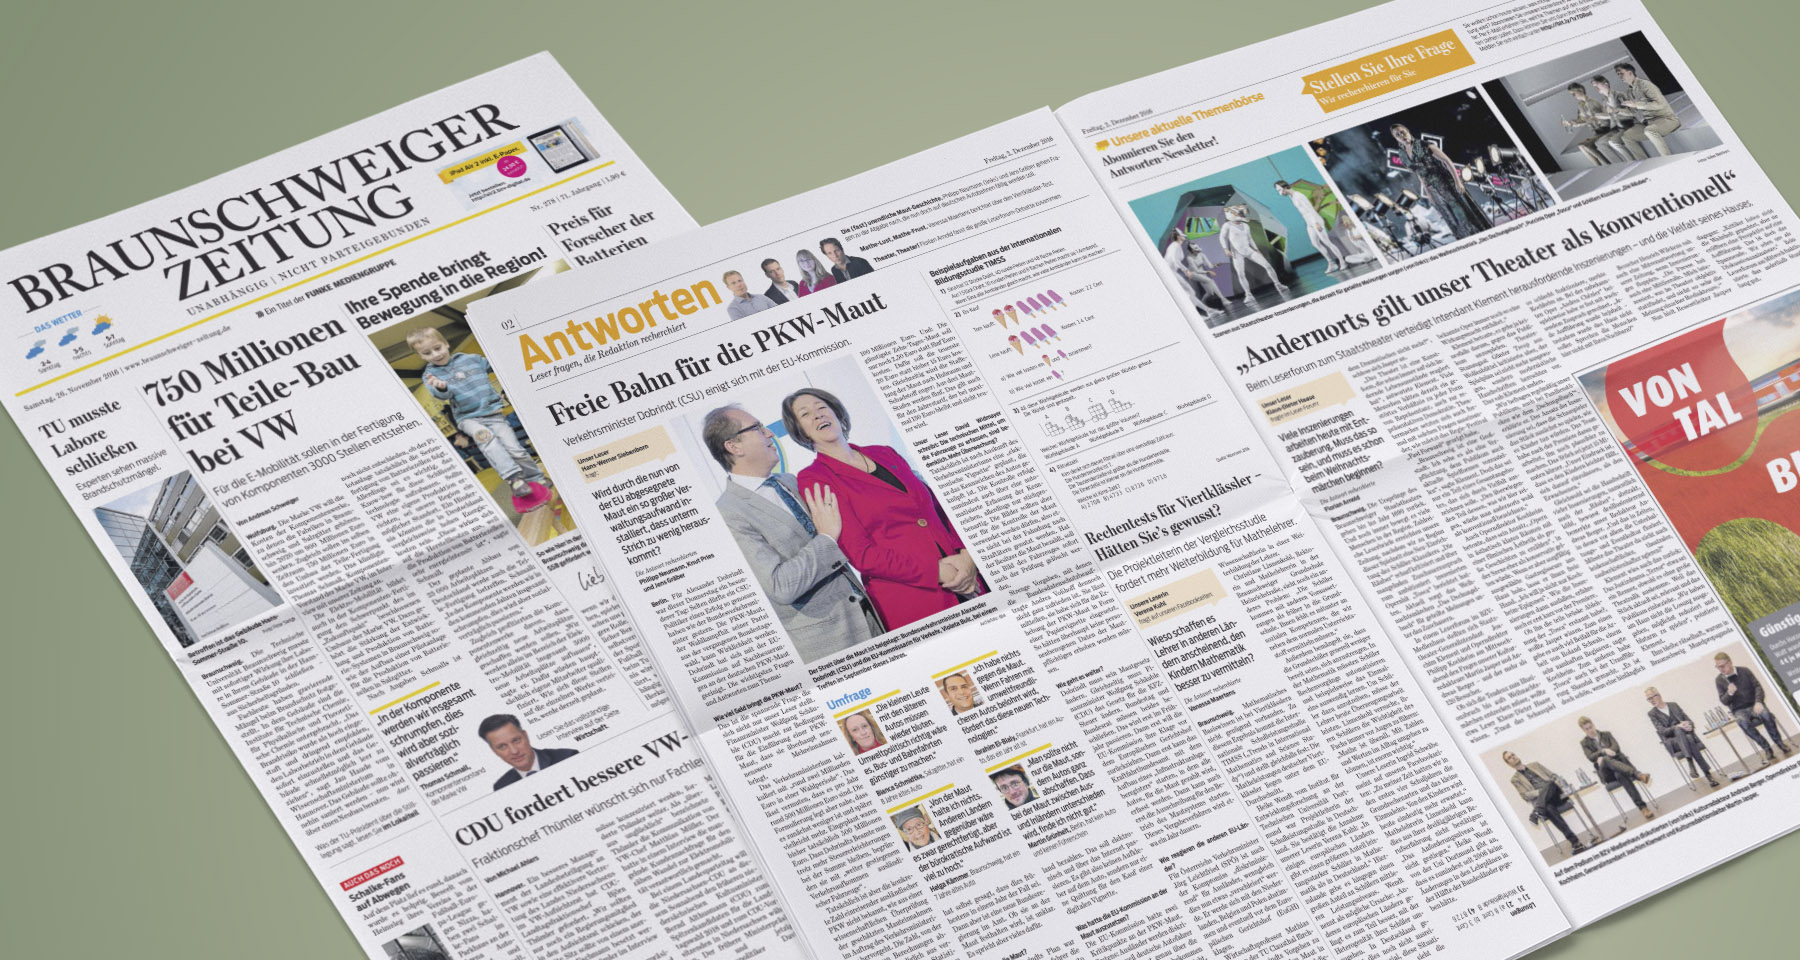 Braunschweiger Zeitung meets brand trust head on with community engagement